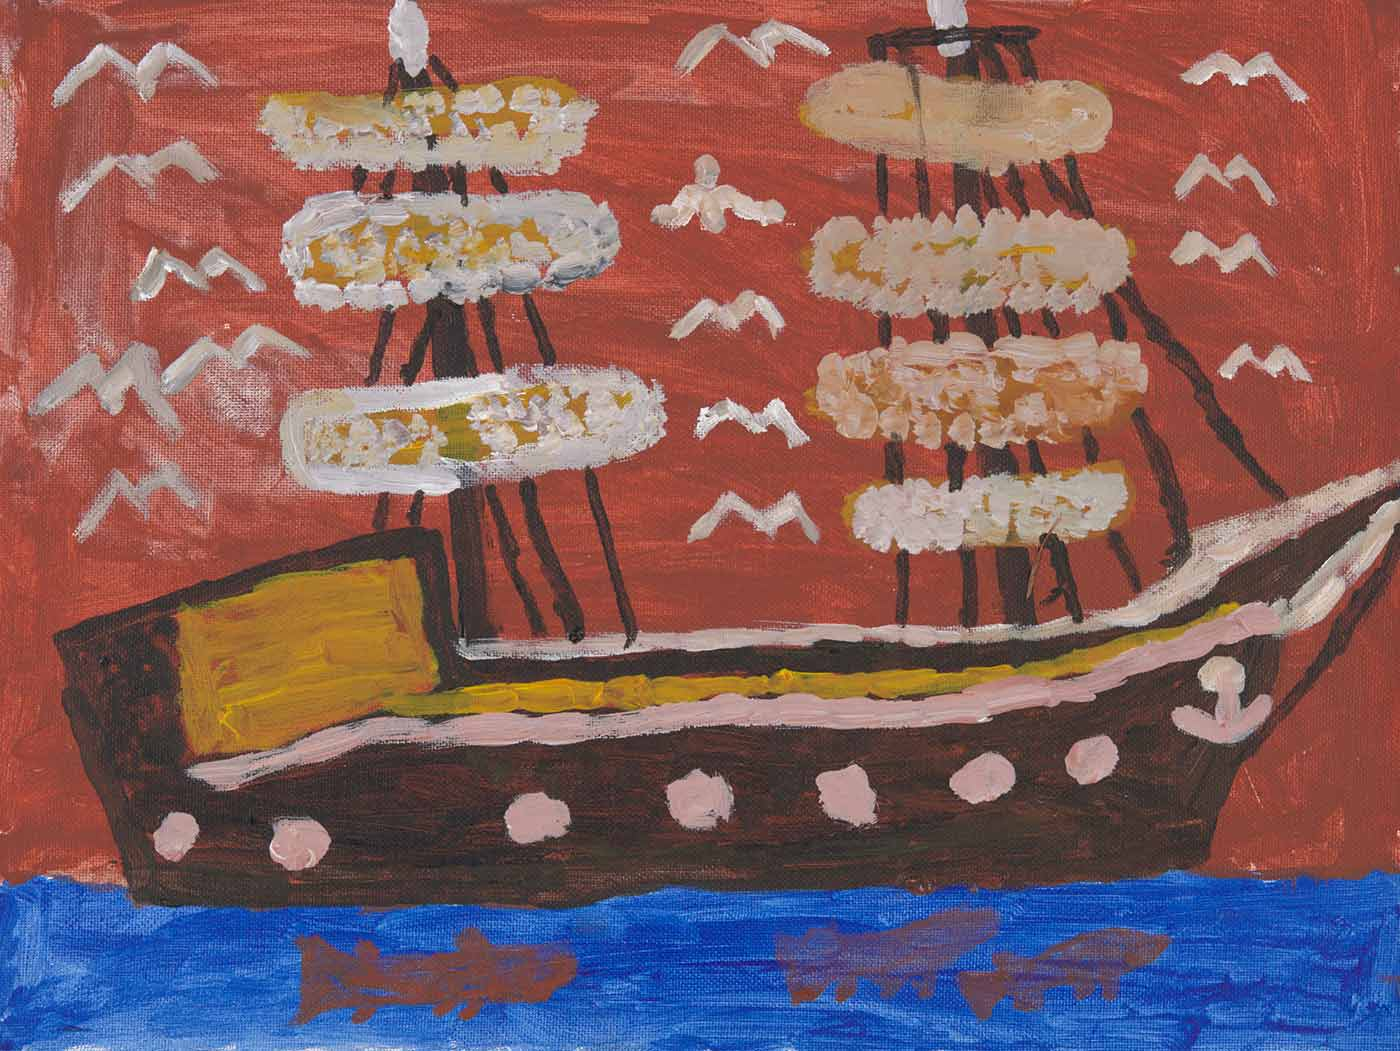 A painting on canvas board. It depicts a large brown ship with two masts on blue water with three fish in the water. There is a brown sky with 15 birds flying around the masts of the ship. - click to view larger image